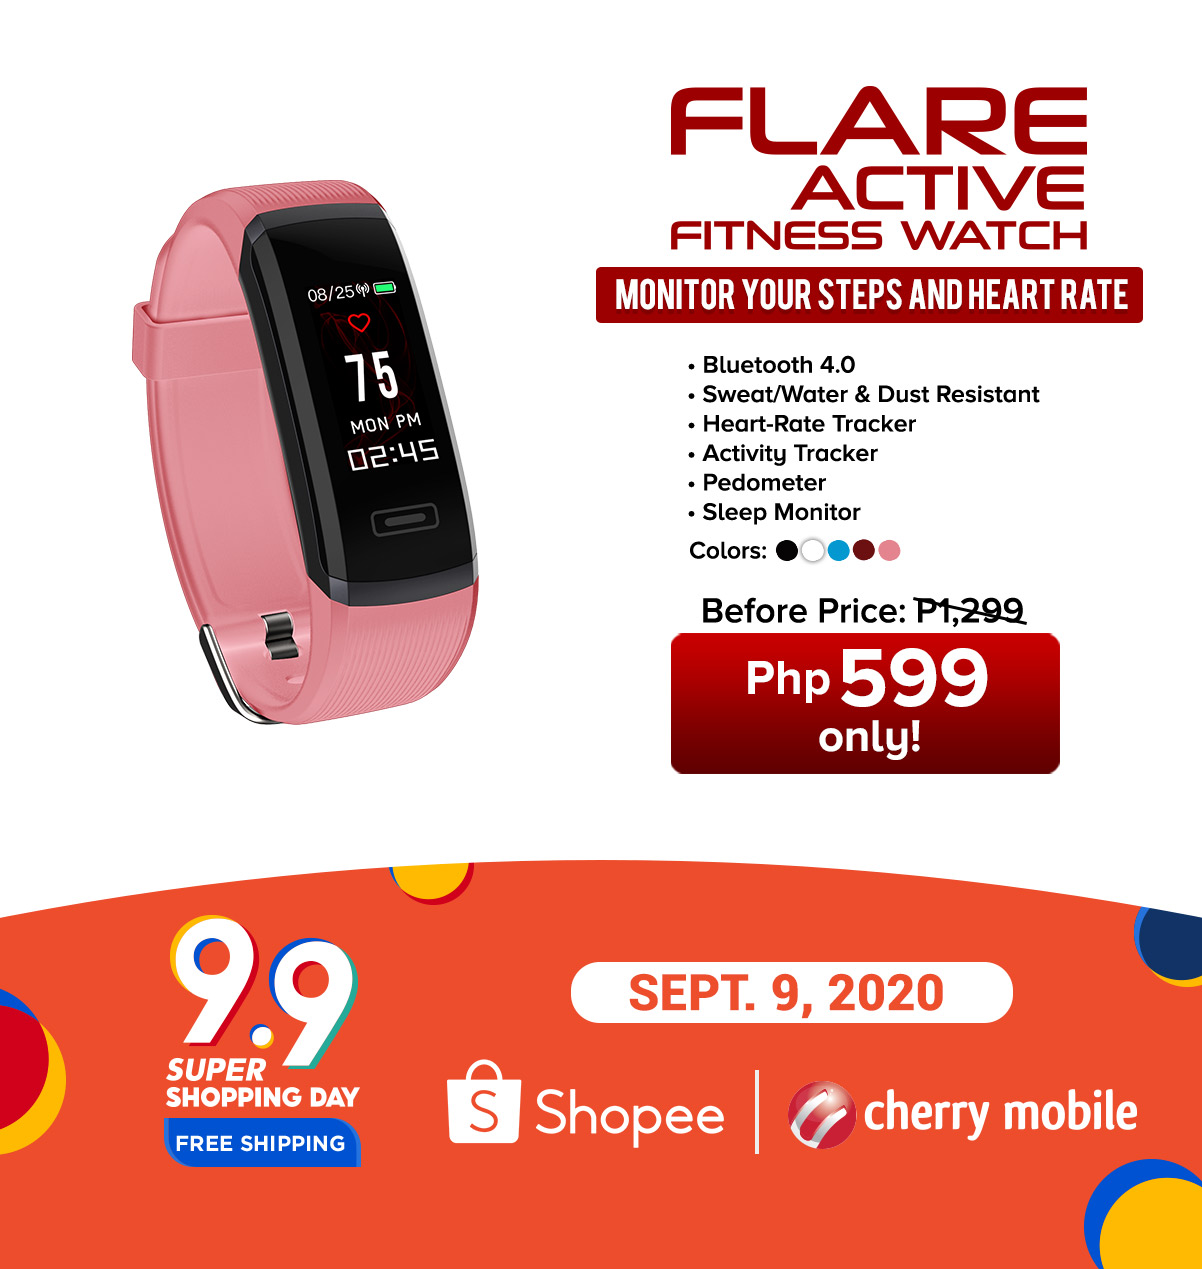 Cherry Mobile Shopee 9.9 Super Shopping Day